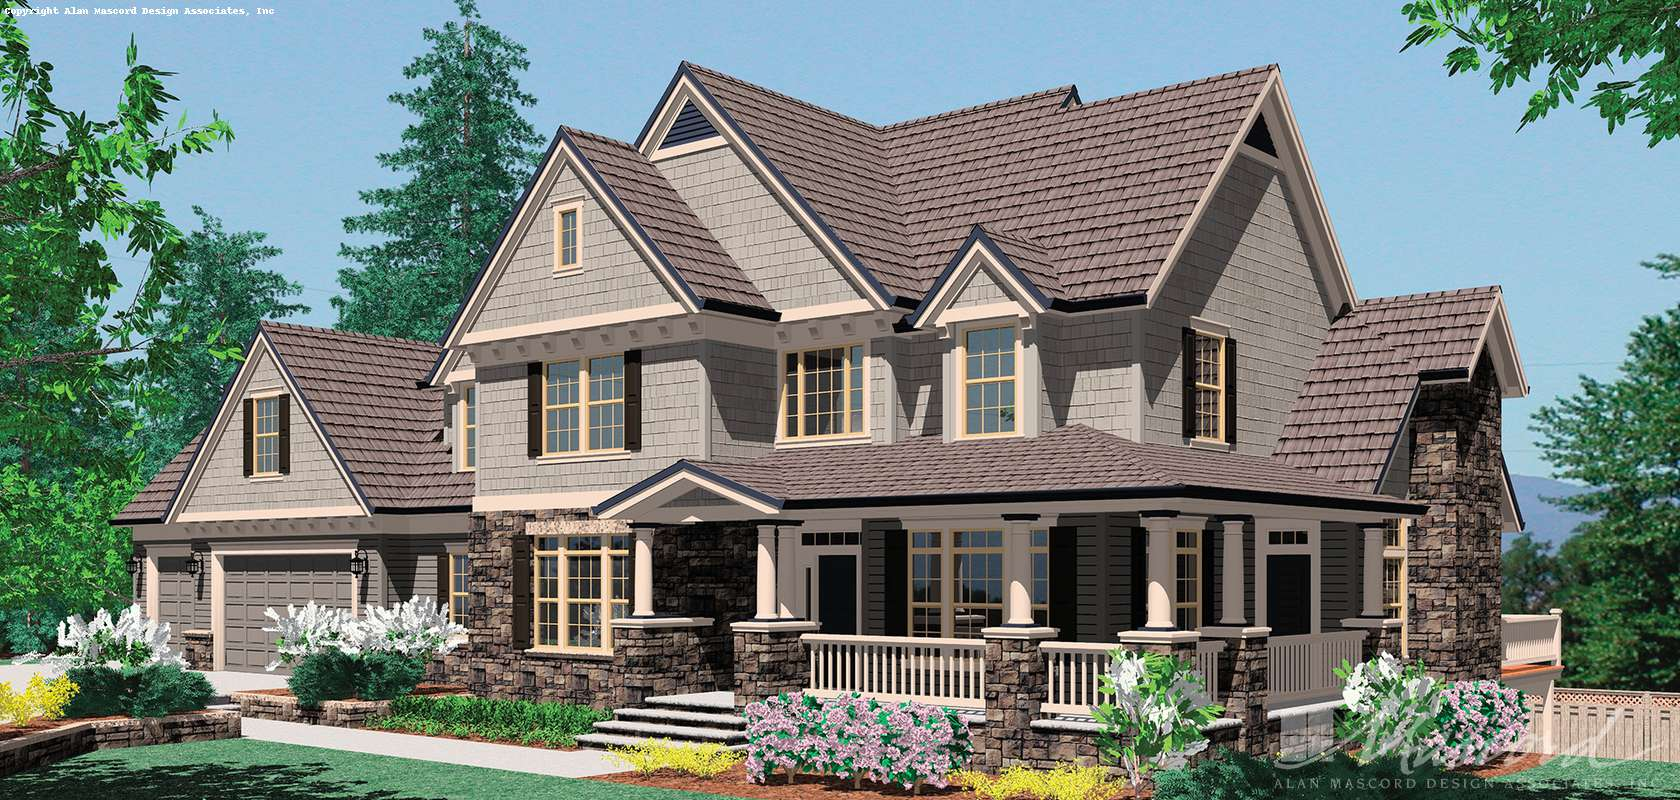 Mascord House Plan 2371A: The Hayfield